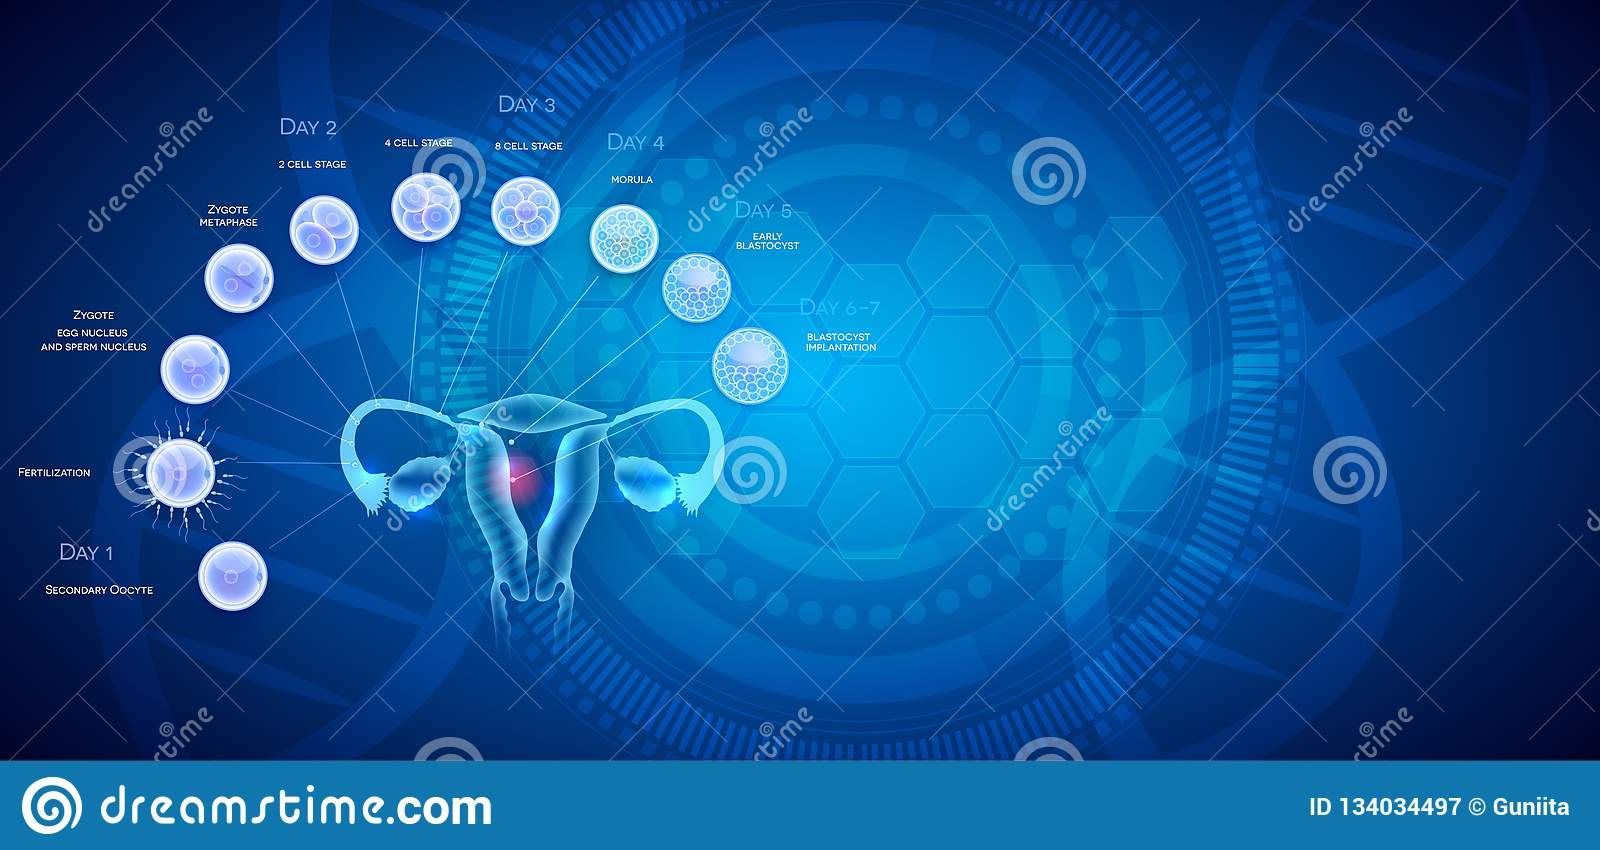 Uterus Anatomy Cell Fertilization Implantation Stock Vector